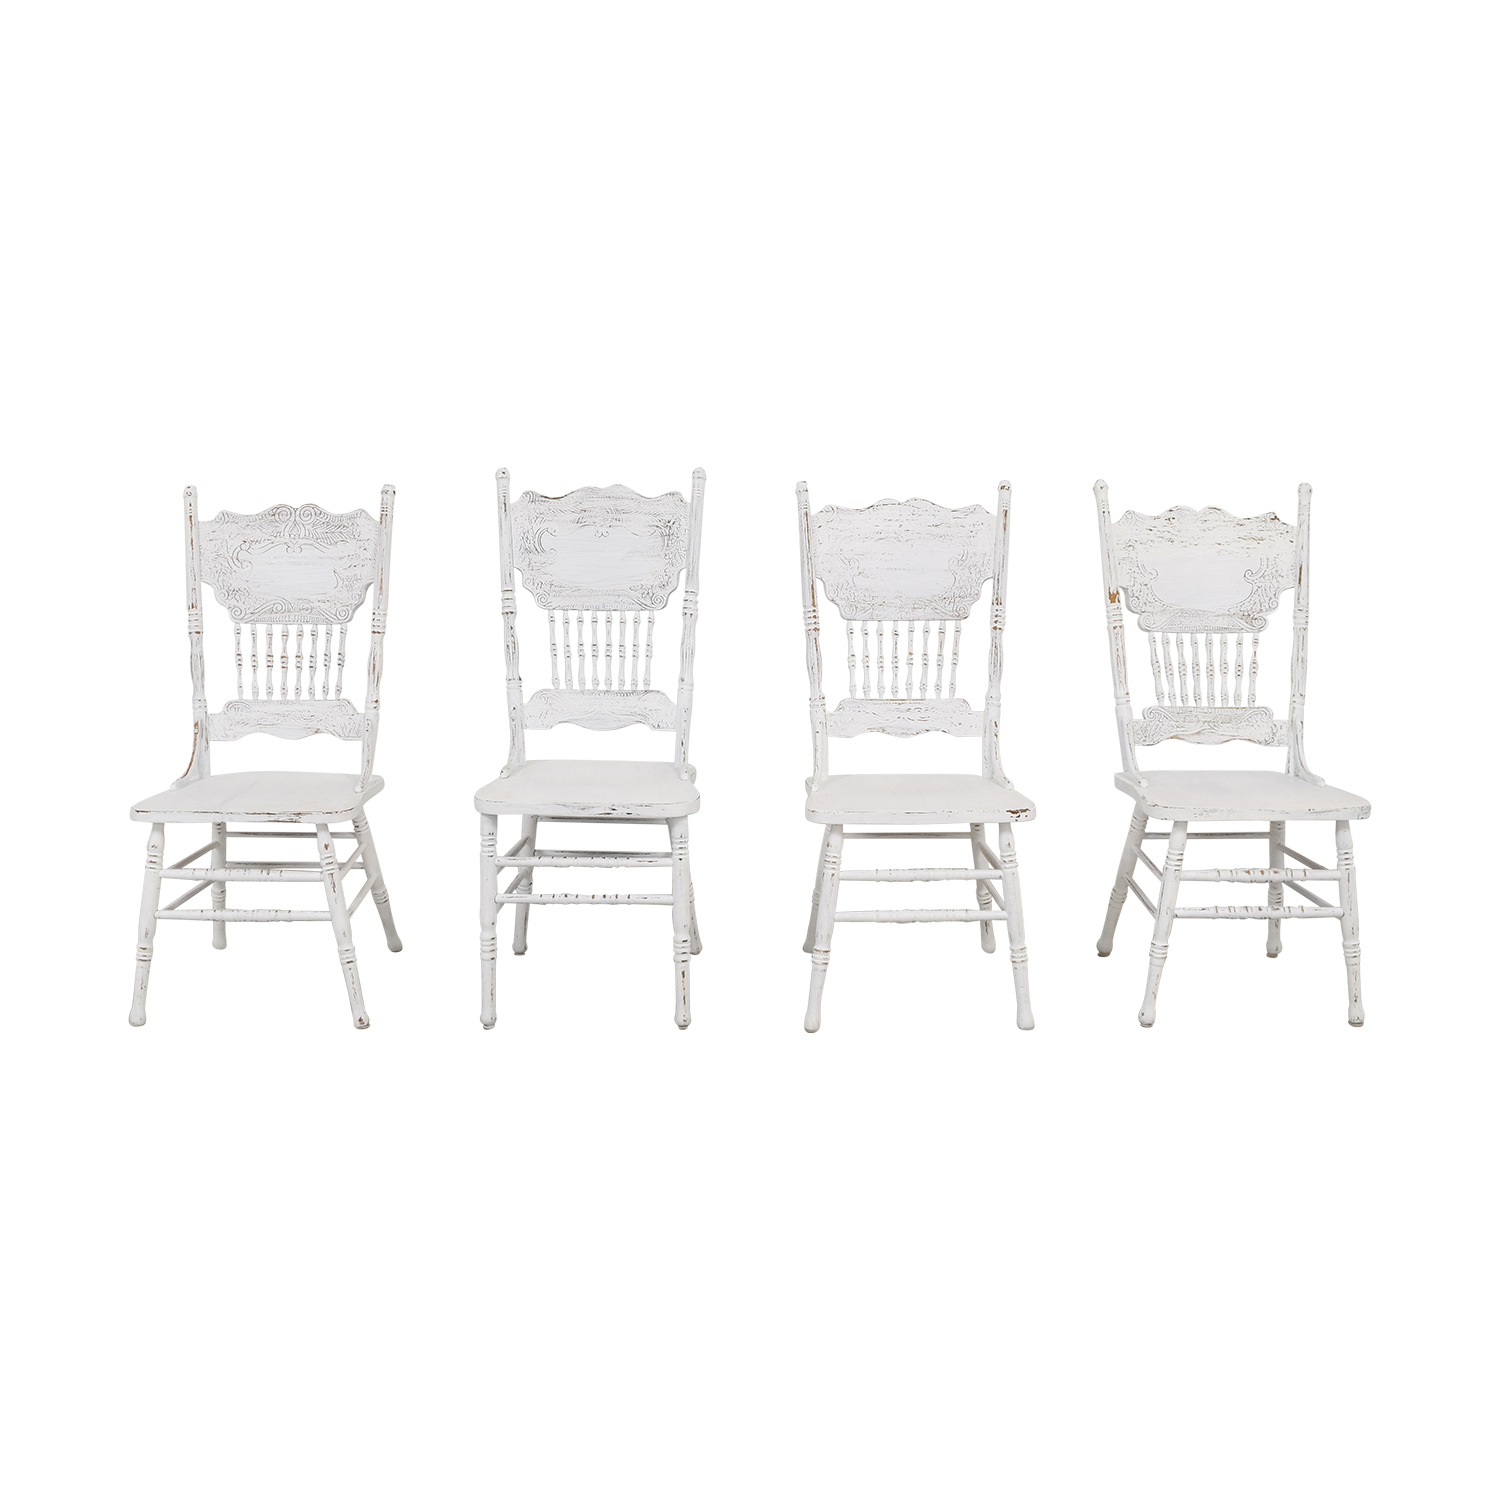 White Farmhouse Dining Chairs used